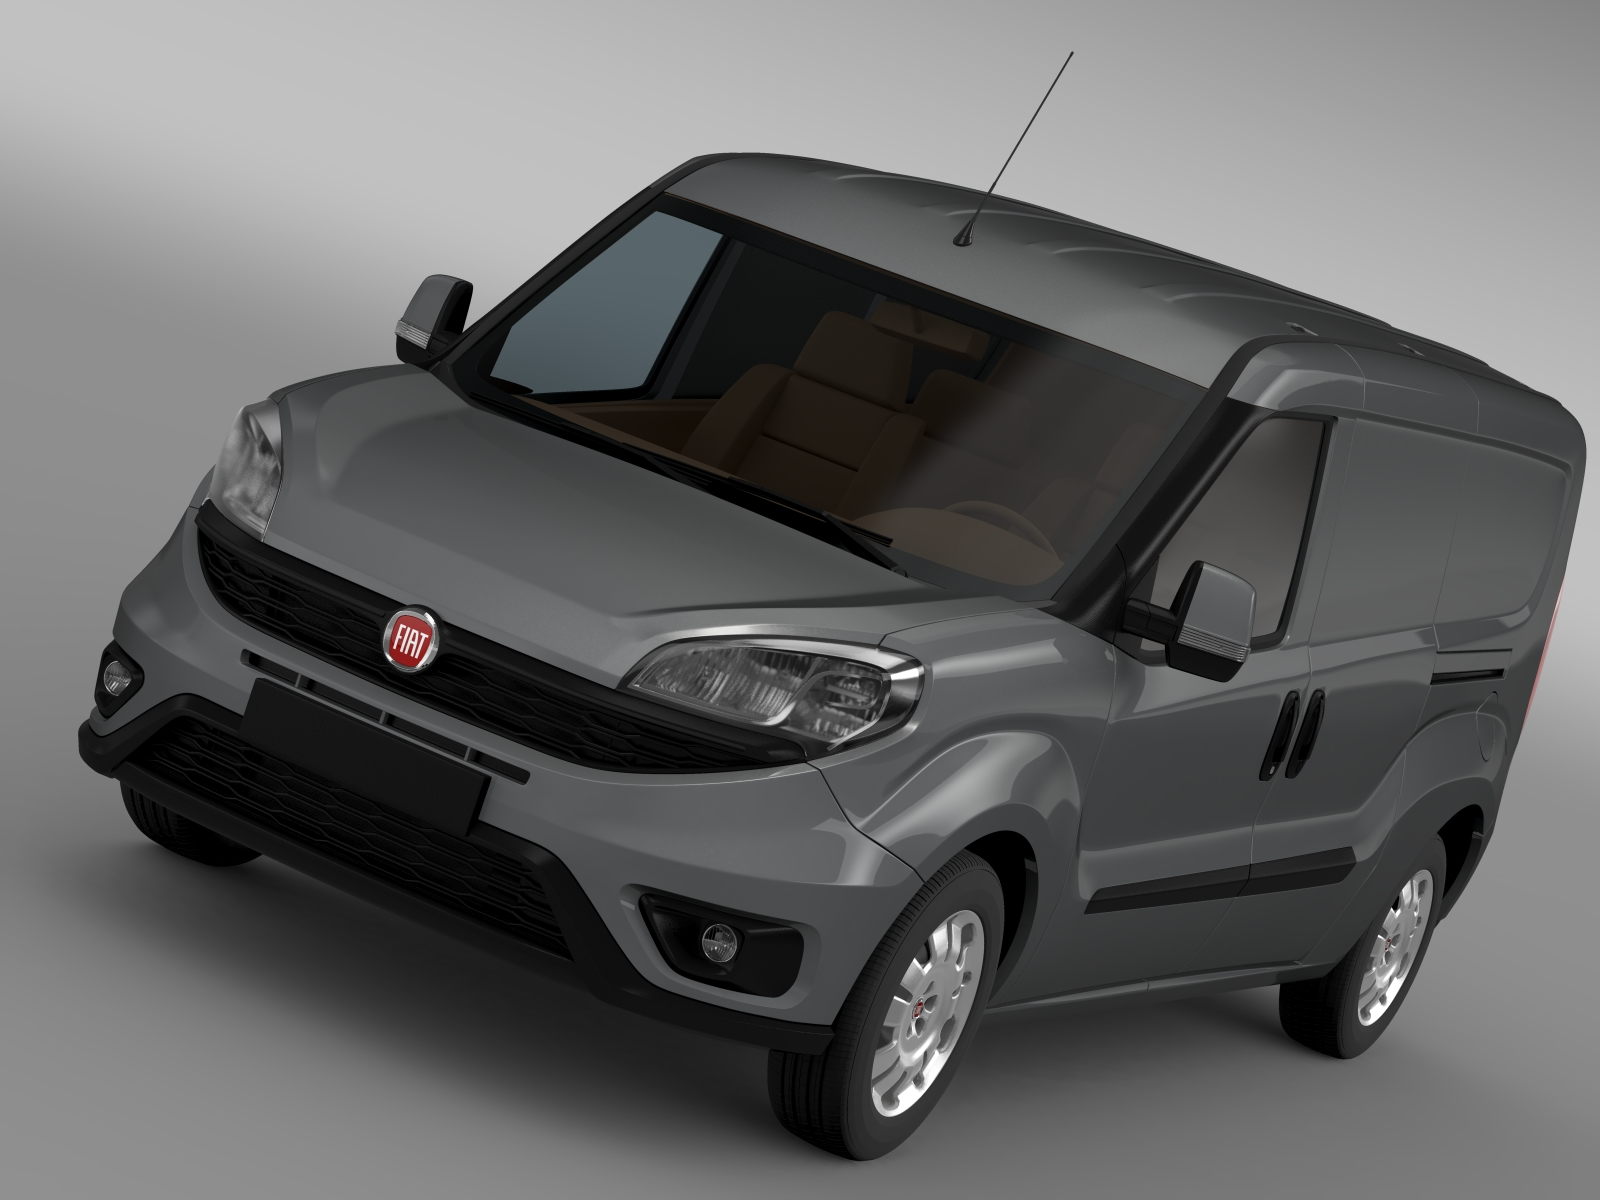 fiat doblo cargo maxi 263 2015 3d model flatpyramid. Black Bedroom Furniture Sets. Home Design Ideas